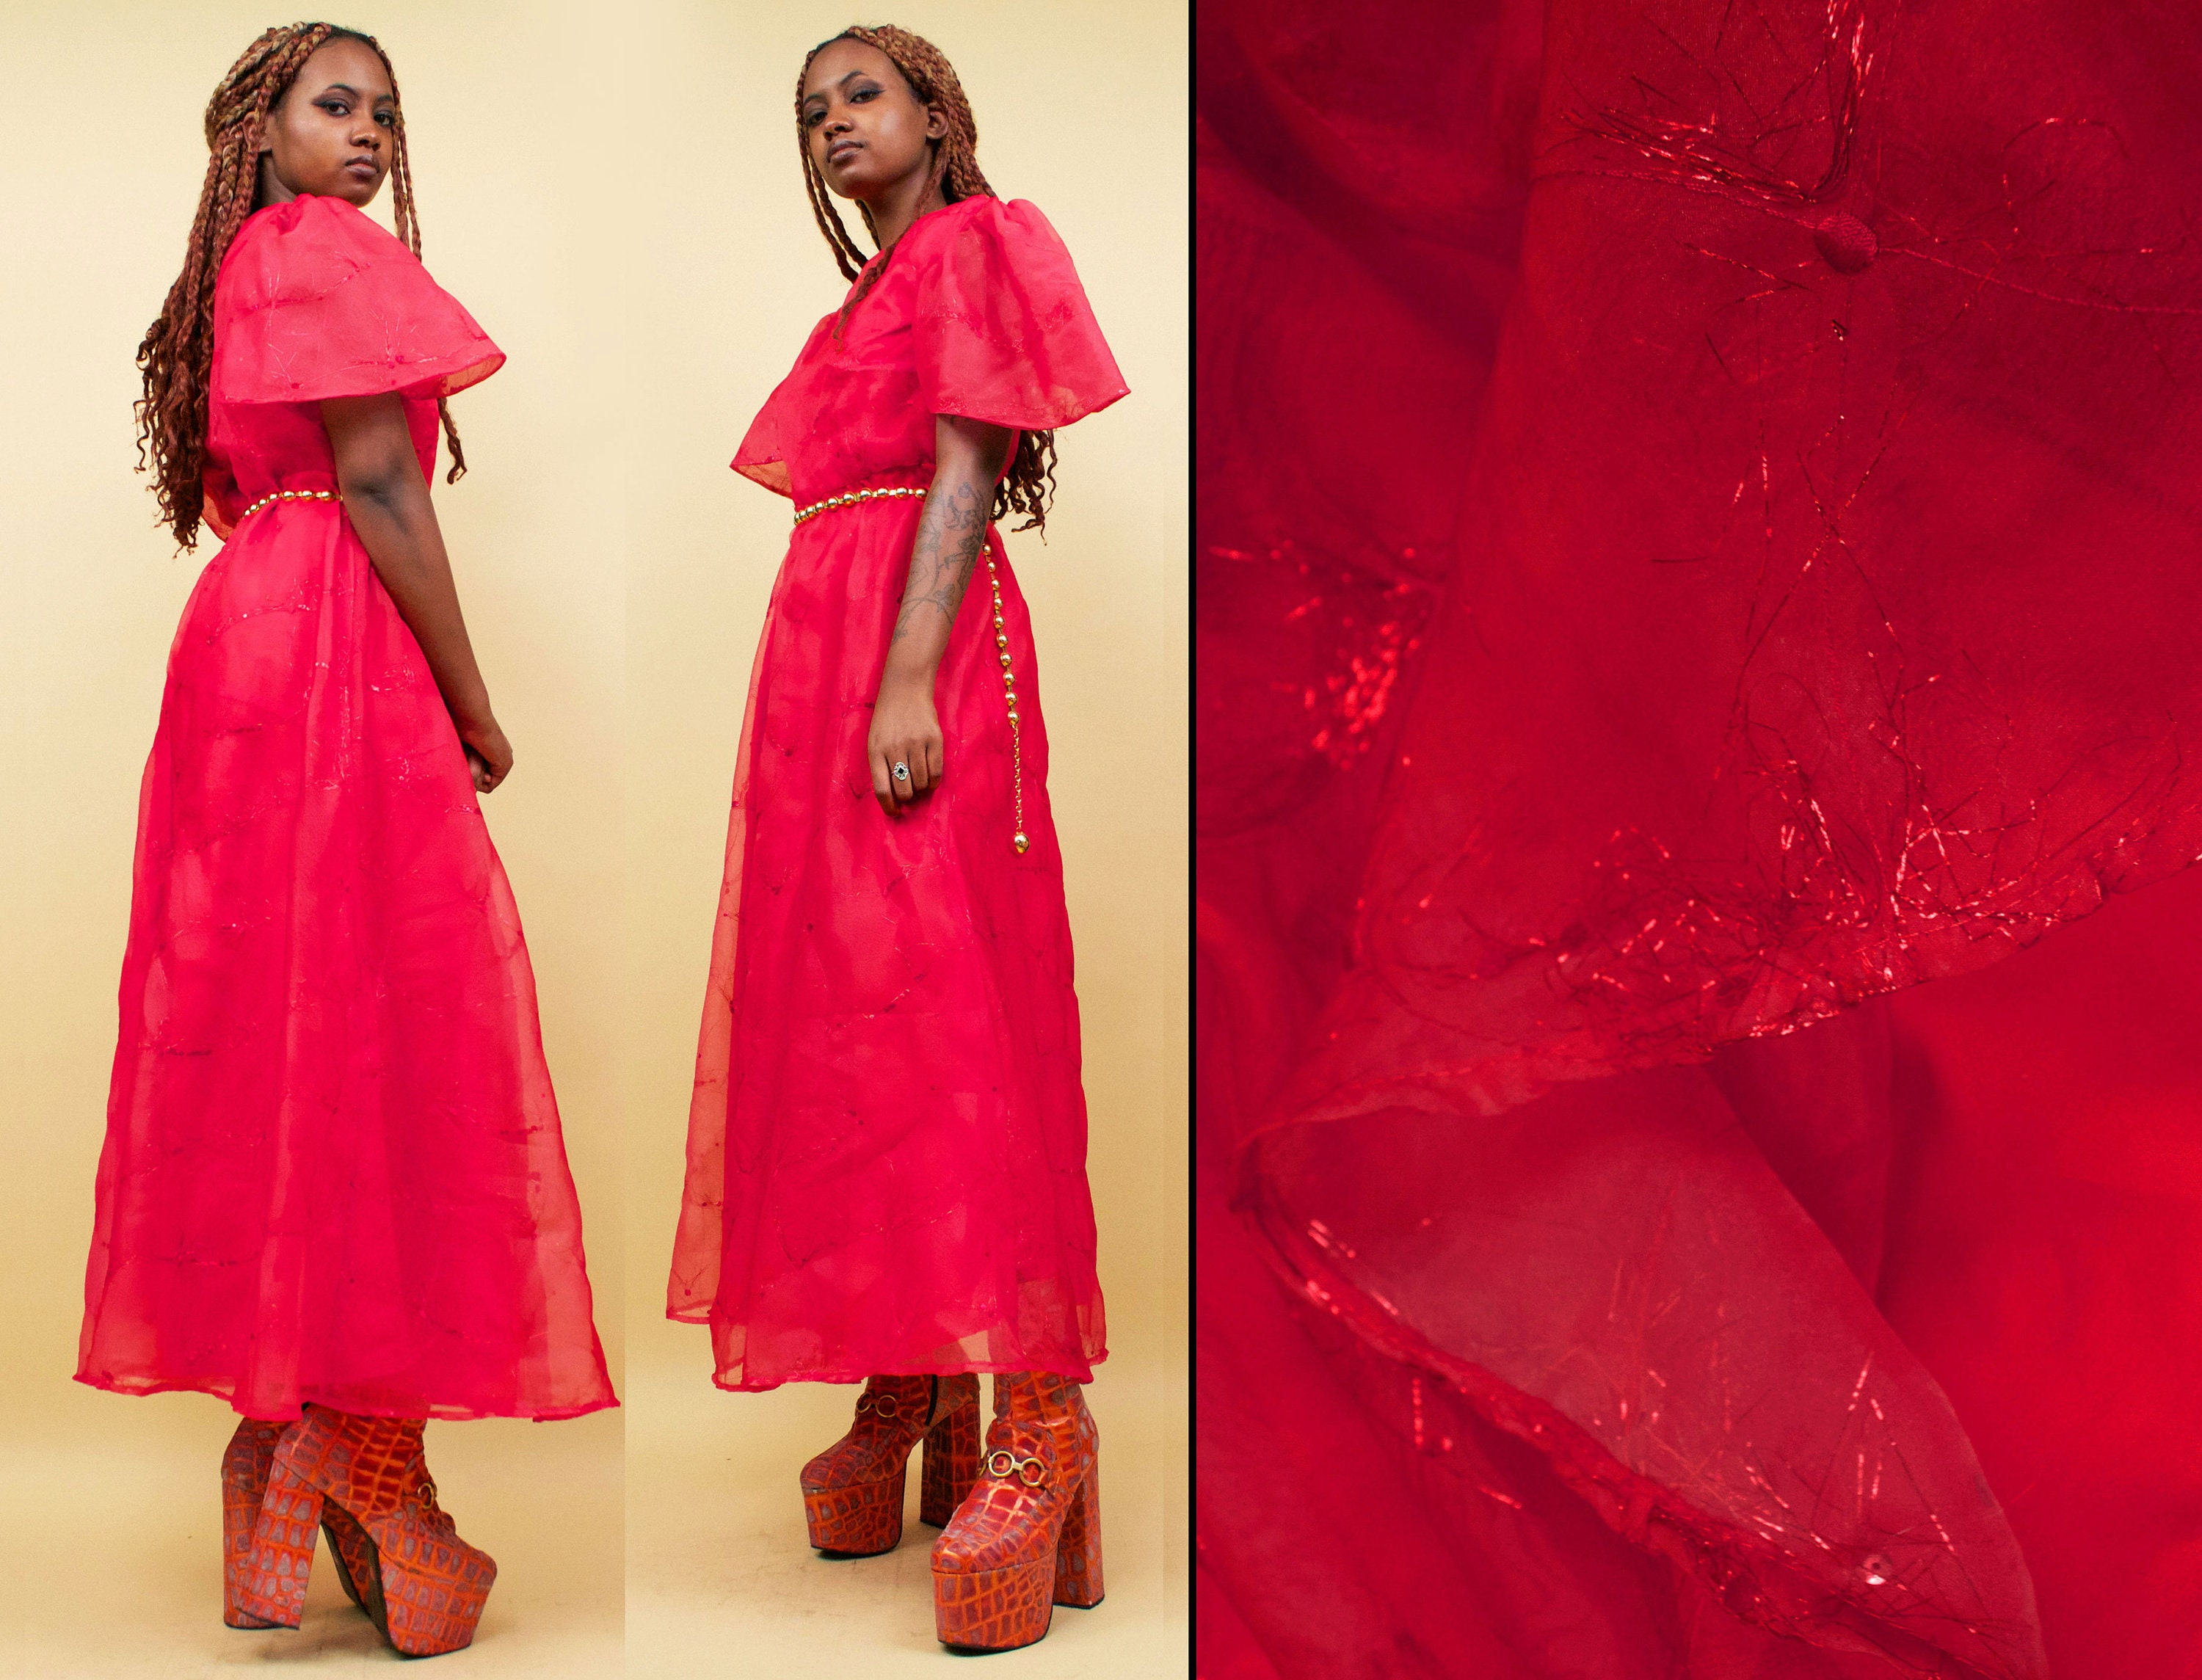 80s Dresses | Casual to Party Dresses 80S Vtg Ethereal Cherry Red Organza  Lurex Gown With Giant Princess Puffy Sleeve Fairy Formal Prom Dress Tinsel Sequin Womens Medium $97.30 AT vintagedancer.com